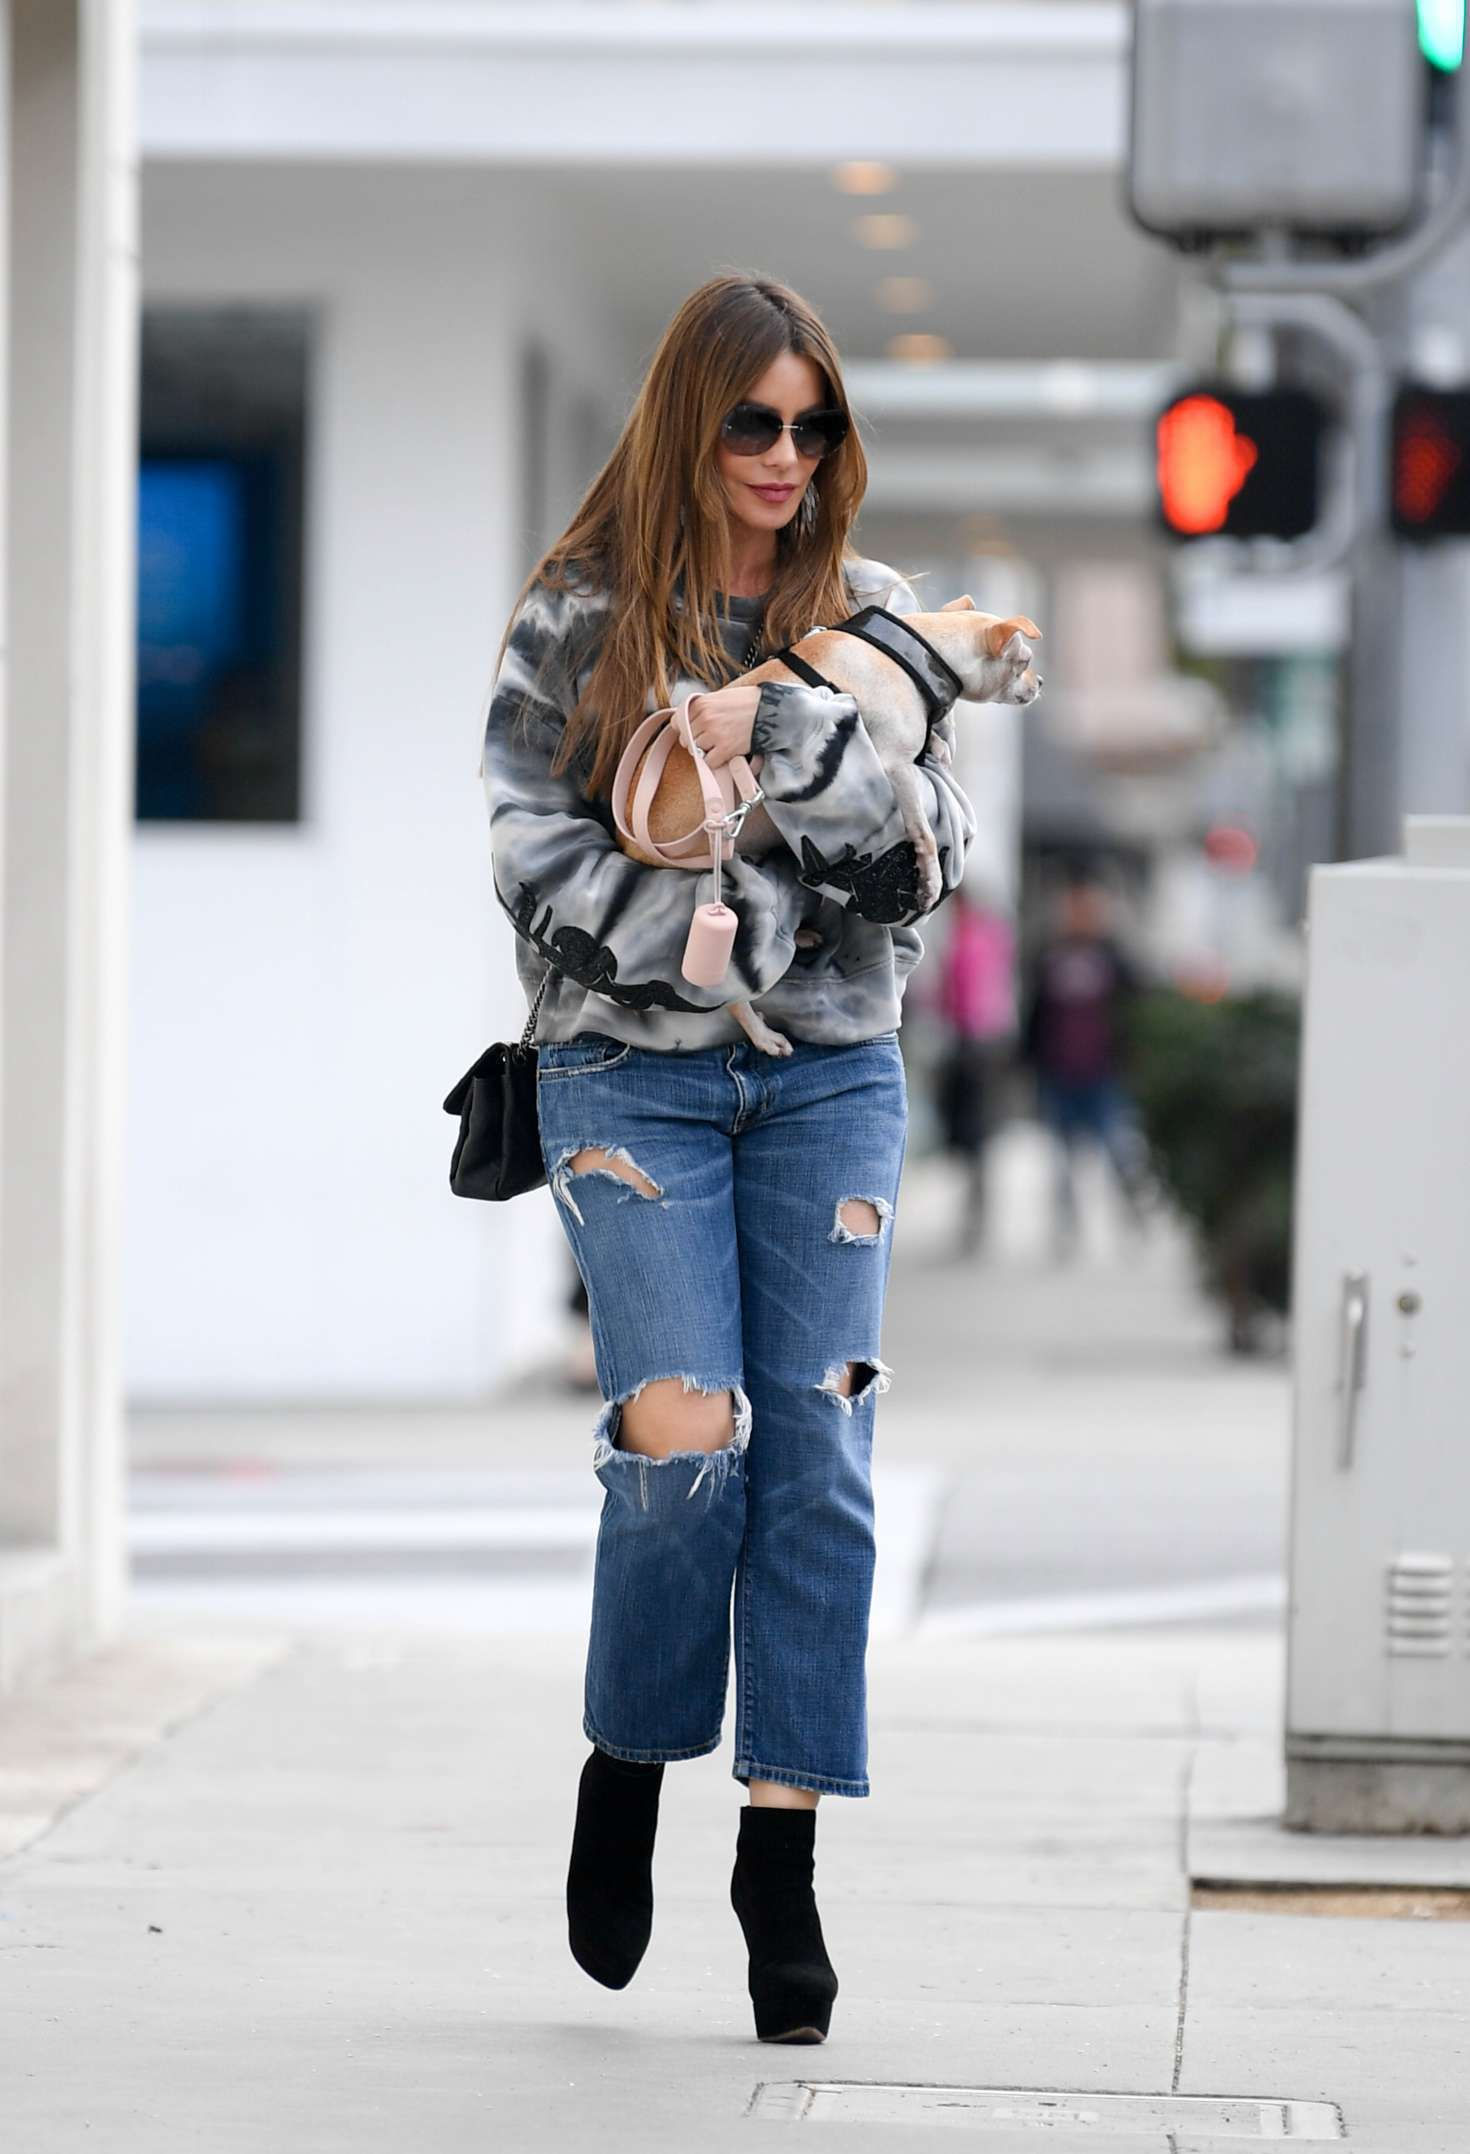 Photo 04: Sofia Vergara in blue ripped Jeans, Beverly Hills, 2019